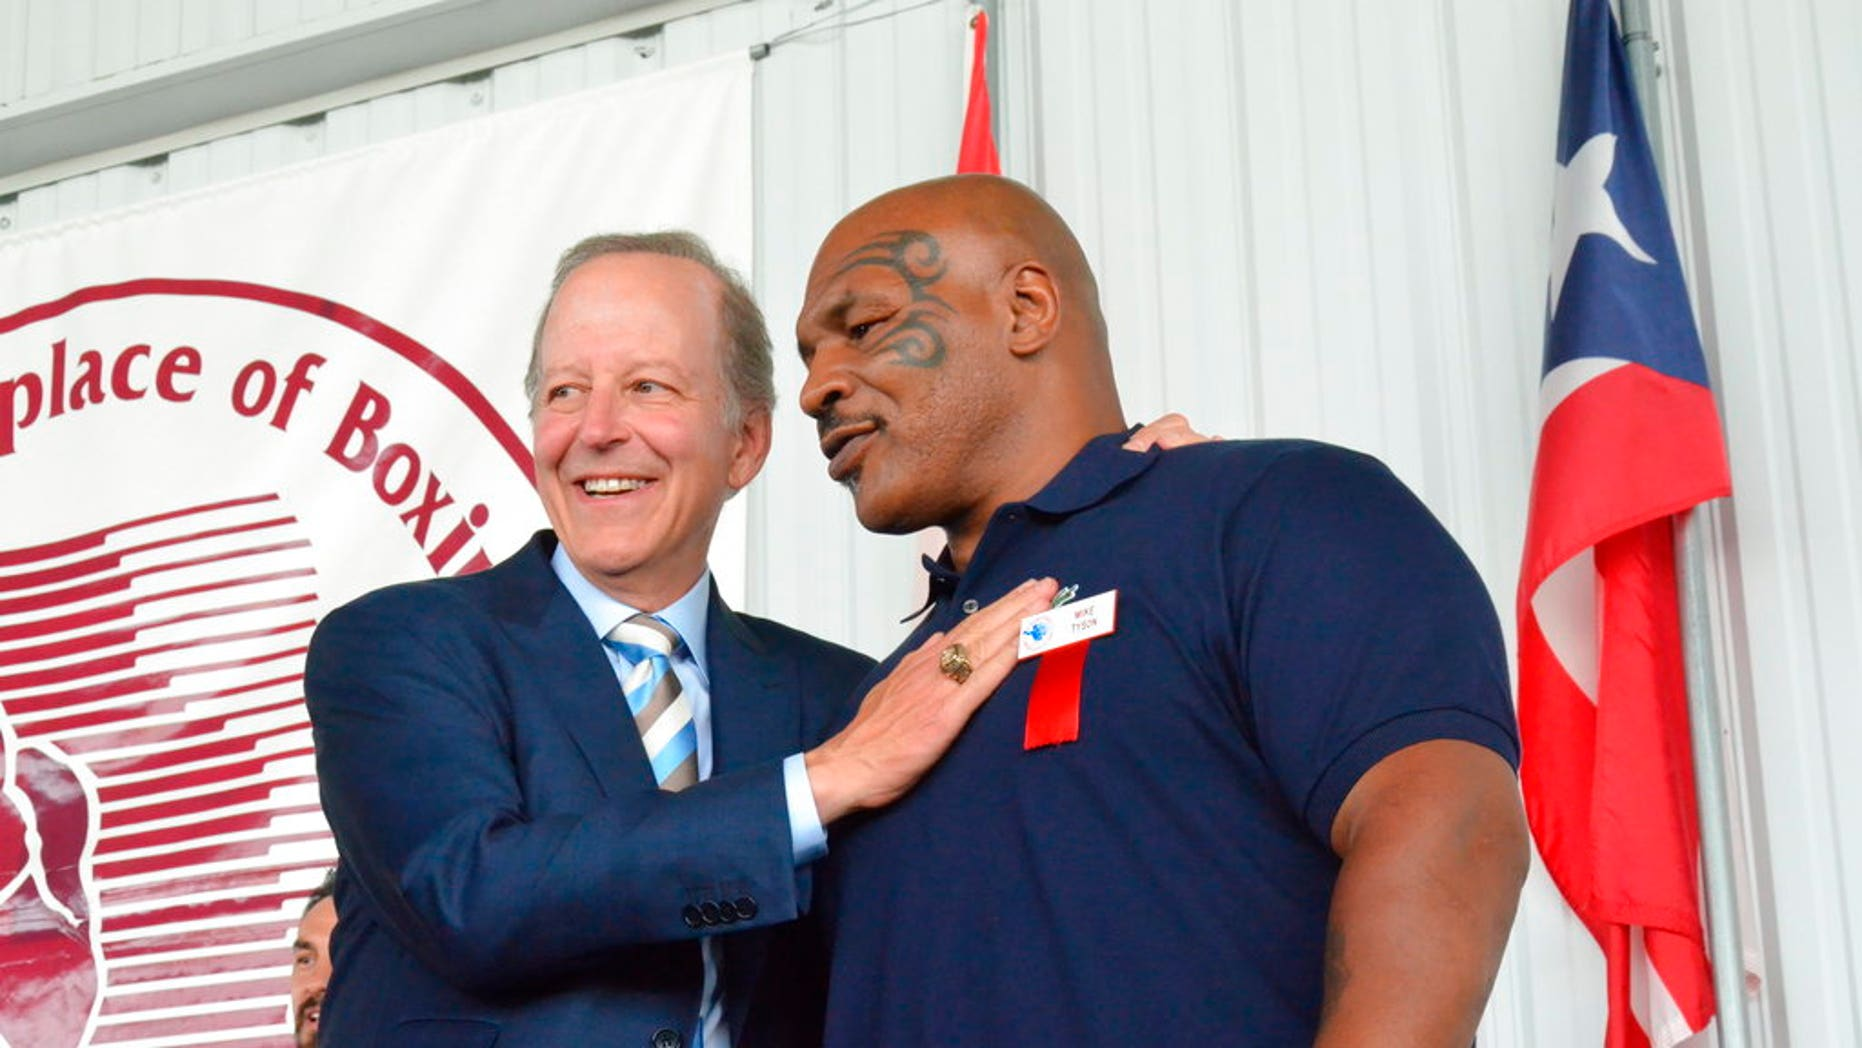 Jim Gray was introduced by Mike Tyson at the International Boxing Hall of Fame induction ceremony in Canastota, New York on Sunday, June 10.